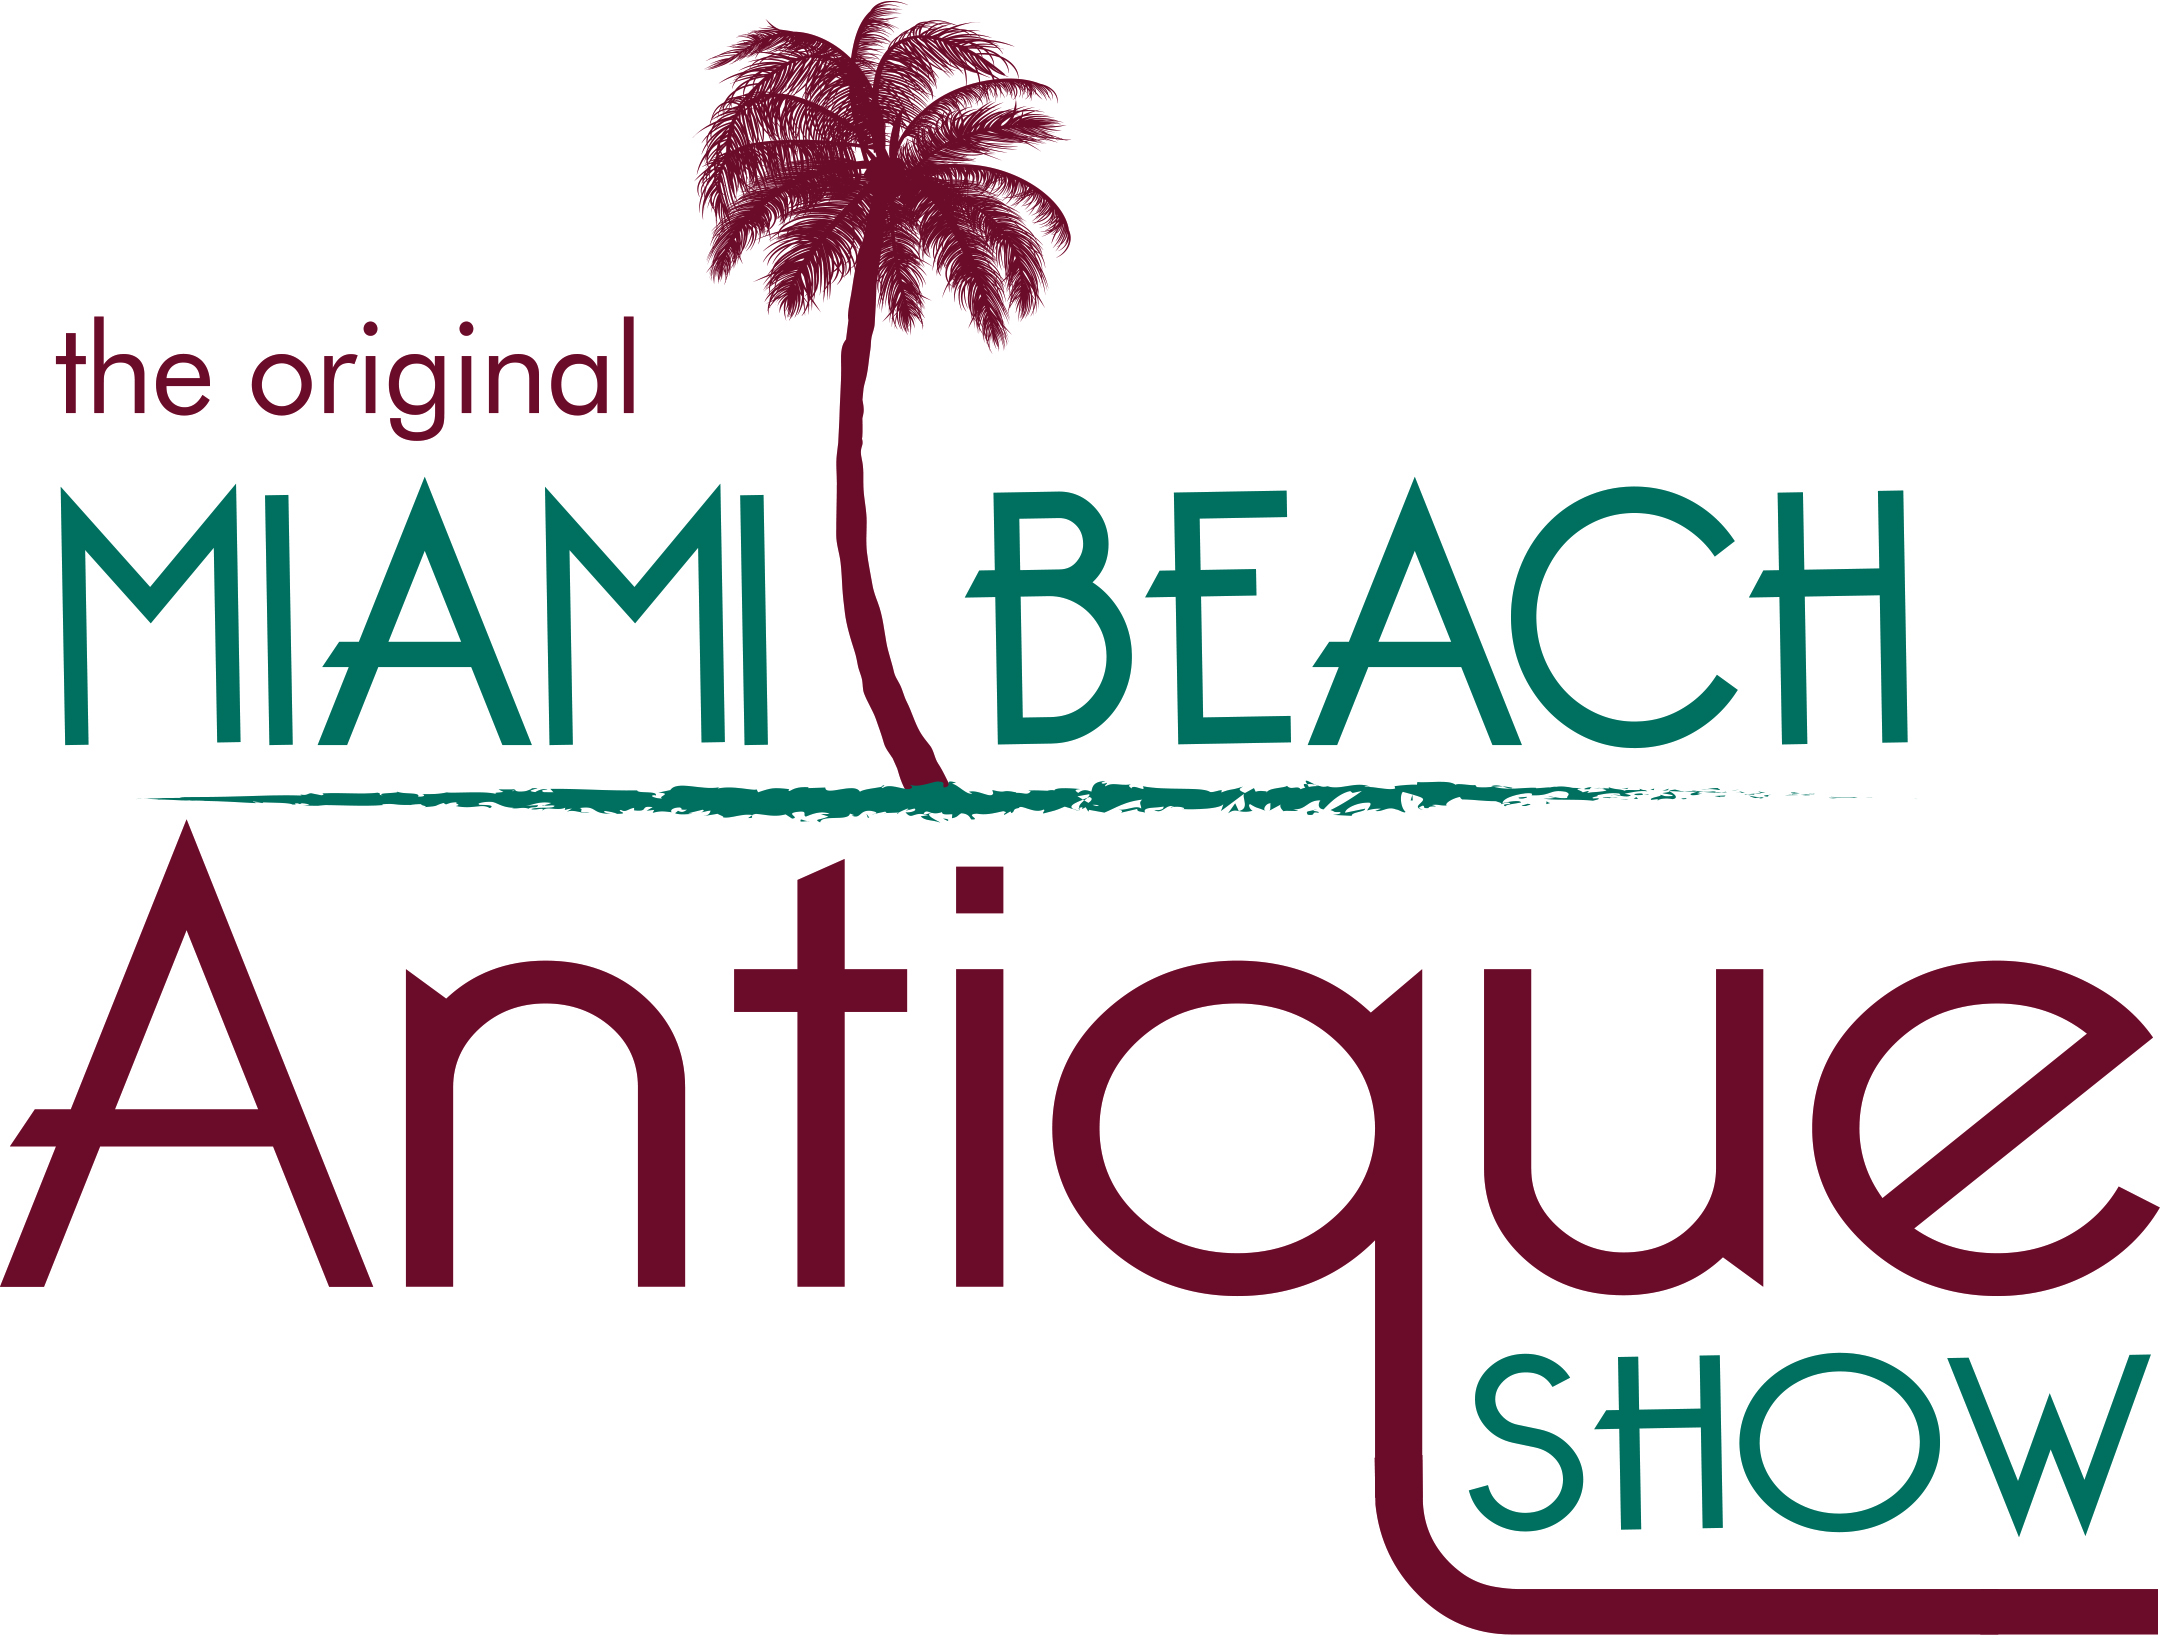 February 9 - 12, 2018 - Miami Fair Expo Center, 10901 SW 24th St., Miami, FL 33165